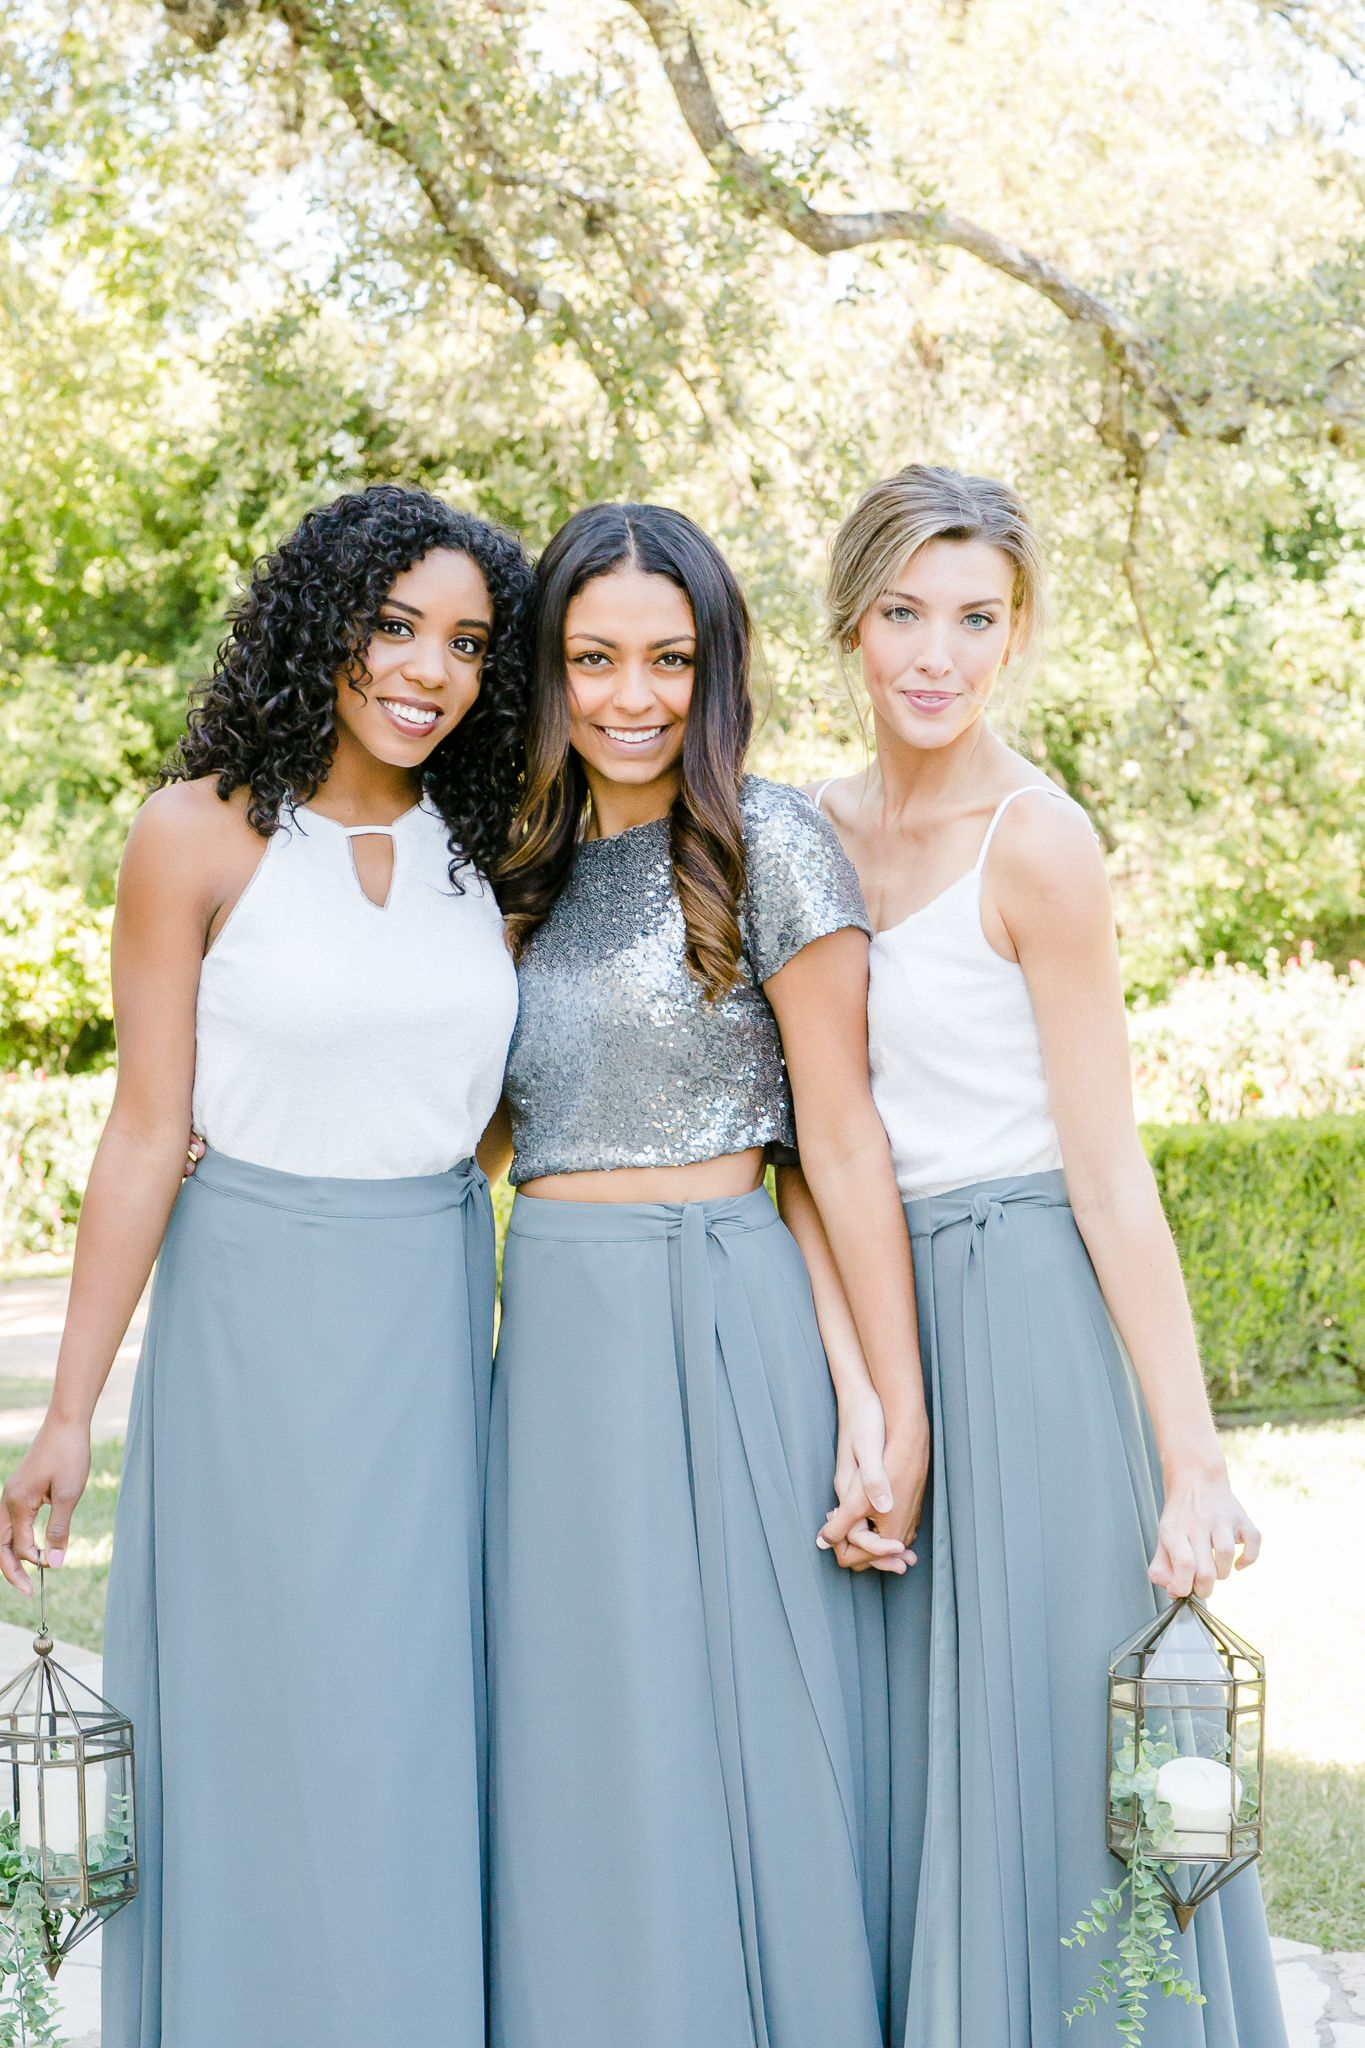 Mix And Match Revelry Bridesmaid Dresses And Separates Photo Features White Sequins And Bridesmaid Separates Bridesmaid Dresses Separates Wedding Dress Outfit